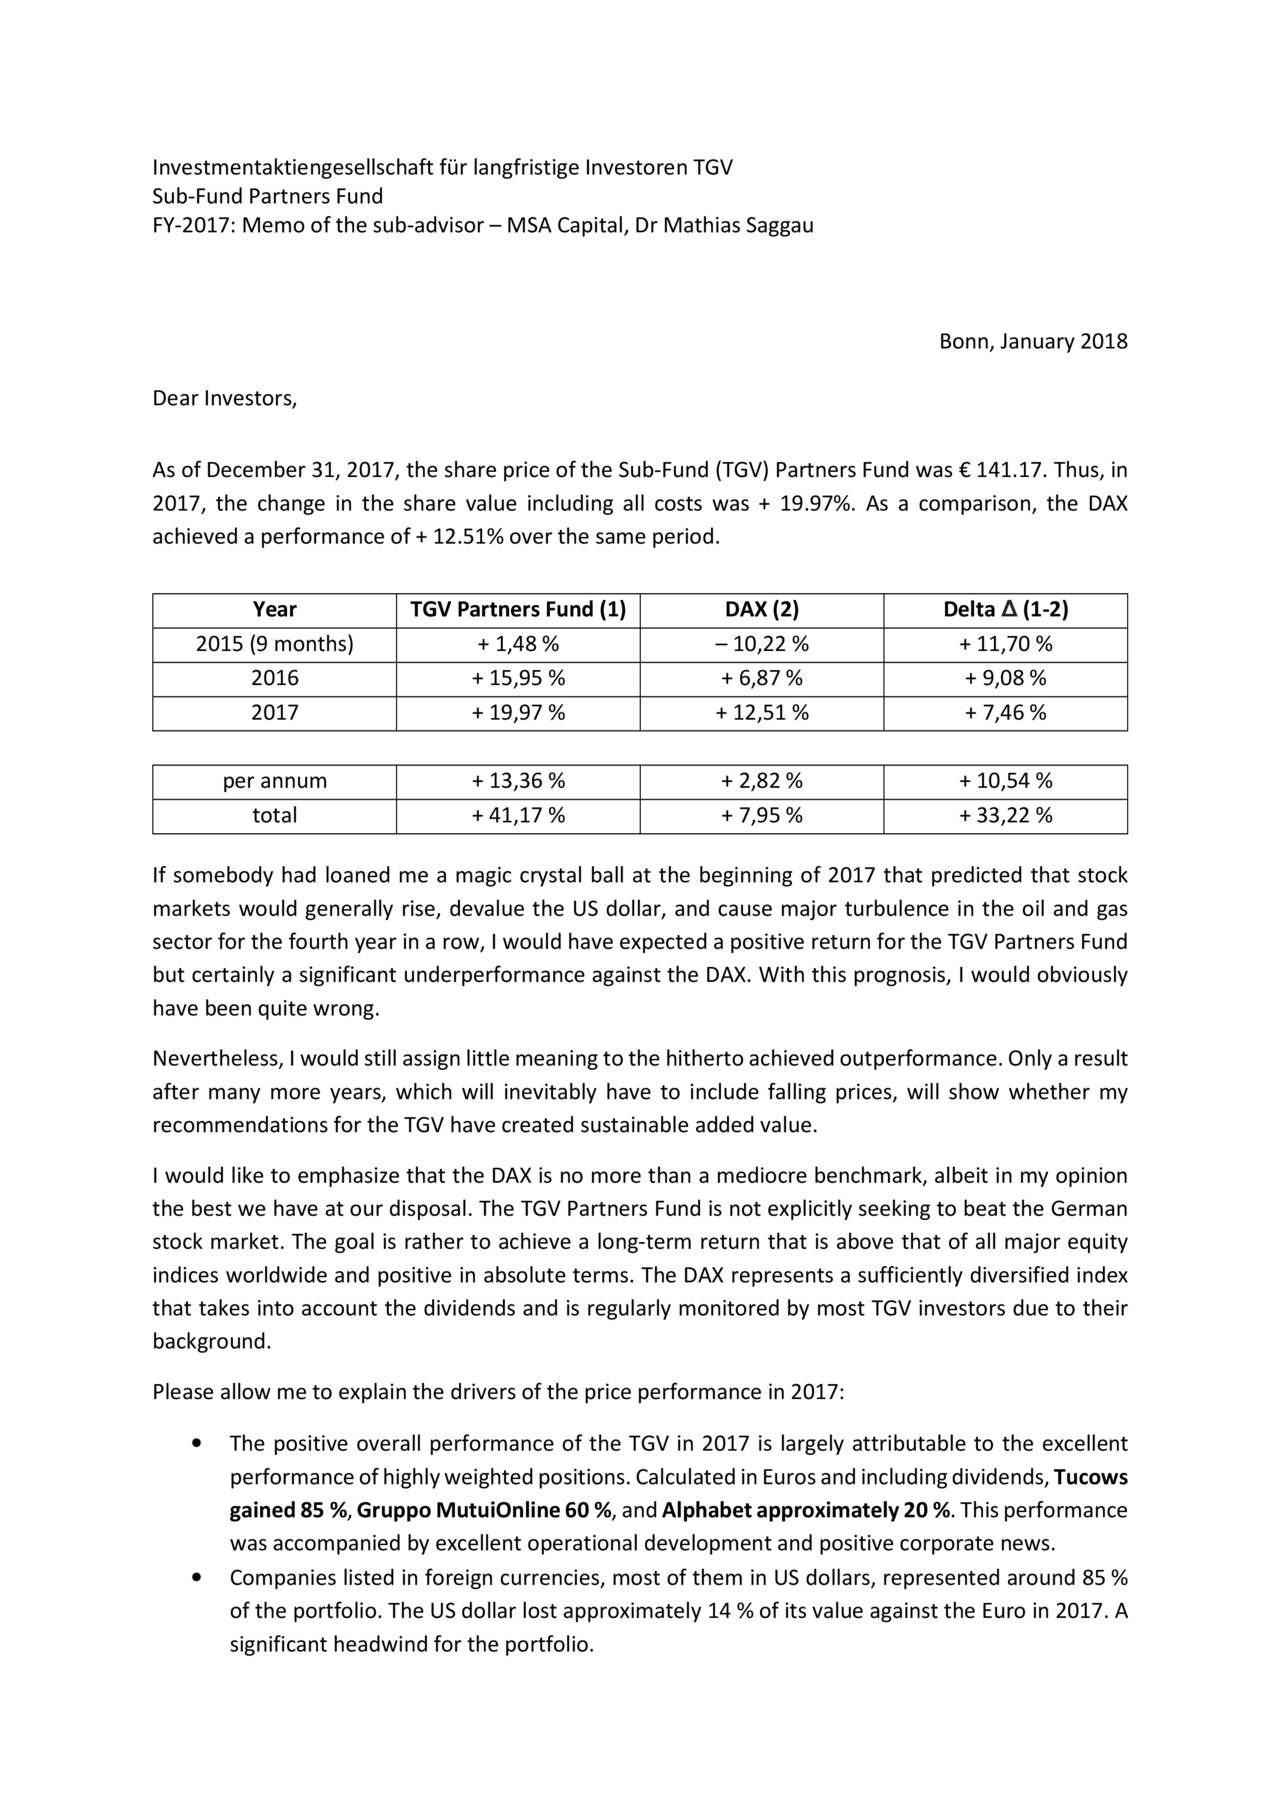 Sub-Fund Partners Fund FY-2017: Memo of the sub-advisor – MSA Capital, DrMathias Saggau Bonn, January 2018 Dear Investors, As of December 31, 2017, the share price of the Sub-Fund (TGV) Partners Fund was € 141.17. Thus, in 2017, the change in the share value including all costs was + 19.97%. As a comparison, the DAX achieved a performance of + 12.51% over the same period. Year TGV Partners Fund (1) DAX (2) Delta ∆ (1-2) 2015 (9 months) + 1,48 % – 10,22 % + 11,70 % 2016 + 15,95 % + 6,87 % + 9,08 % 2017 + 19,97 % + 12,51 % + 7,46 % per annum + 13,36 % + 2,82 % + 10,54 % total + 41,17 % + 7,95 % + 33,22 % If somebody had loaned me a magic crystal ball at the beginning of 2017 that predicted that stock markets would generally rise, devalue the US dollar, and cause major turbulence in the oil and gas sector for the fourth year in a row, I would have expected a positive return for the TGV Partners Fund but certainly a significant underperformance against the DAX. With this prognosis, I would obviously have been quite wrong. Nevertheless, I would still assign littlemeaning to the hitherto achievedoutperformance.Only aresult after many more years, which will inevitably have to include falling prices, will show whether my recommendations for the TGV have created sustainable added value. I would like to emphasize that the DAX is no more than a mediocre benchmark, albeit in my opinion the best we have at our disposal. The TGV Partners Fund is not explicitly seeking to beat the German stock market. The goal is rather to achieve a long-term return that is above that of all major equity indices worldwide and positive in absolute terms. The DAX represents a sufficiently diversified index that takes into account the dividends and is regularly monitored by most TGV investors due to their background. Please allow me to explain the drivers of the price performance in 2017: • The positive overall performance of the TGV in 2017 is largely attributable to the excellent performanceofhighlyweightedpositions.CalculatedinEurosandincludingdividends,Tucows gained85 %,GruppoMutuiOnline60 %,andAlphabetapproximately20 %.Thisperformance was accompanied by excellent operational development and positive corporate news. • Companies listed in foreign currencies, most of them in US dollars, represented around 85 % of the portfolio. The US dollar lost approximately 14 % of its value against the Euro in 2017. A significant headwind for the portfolio.